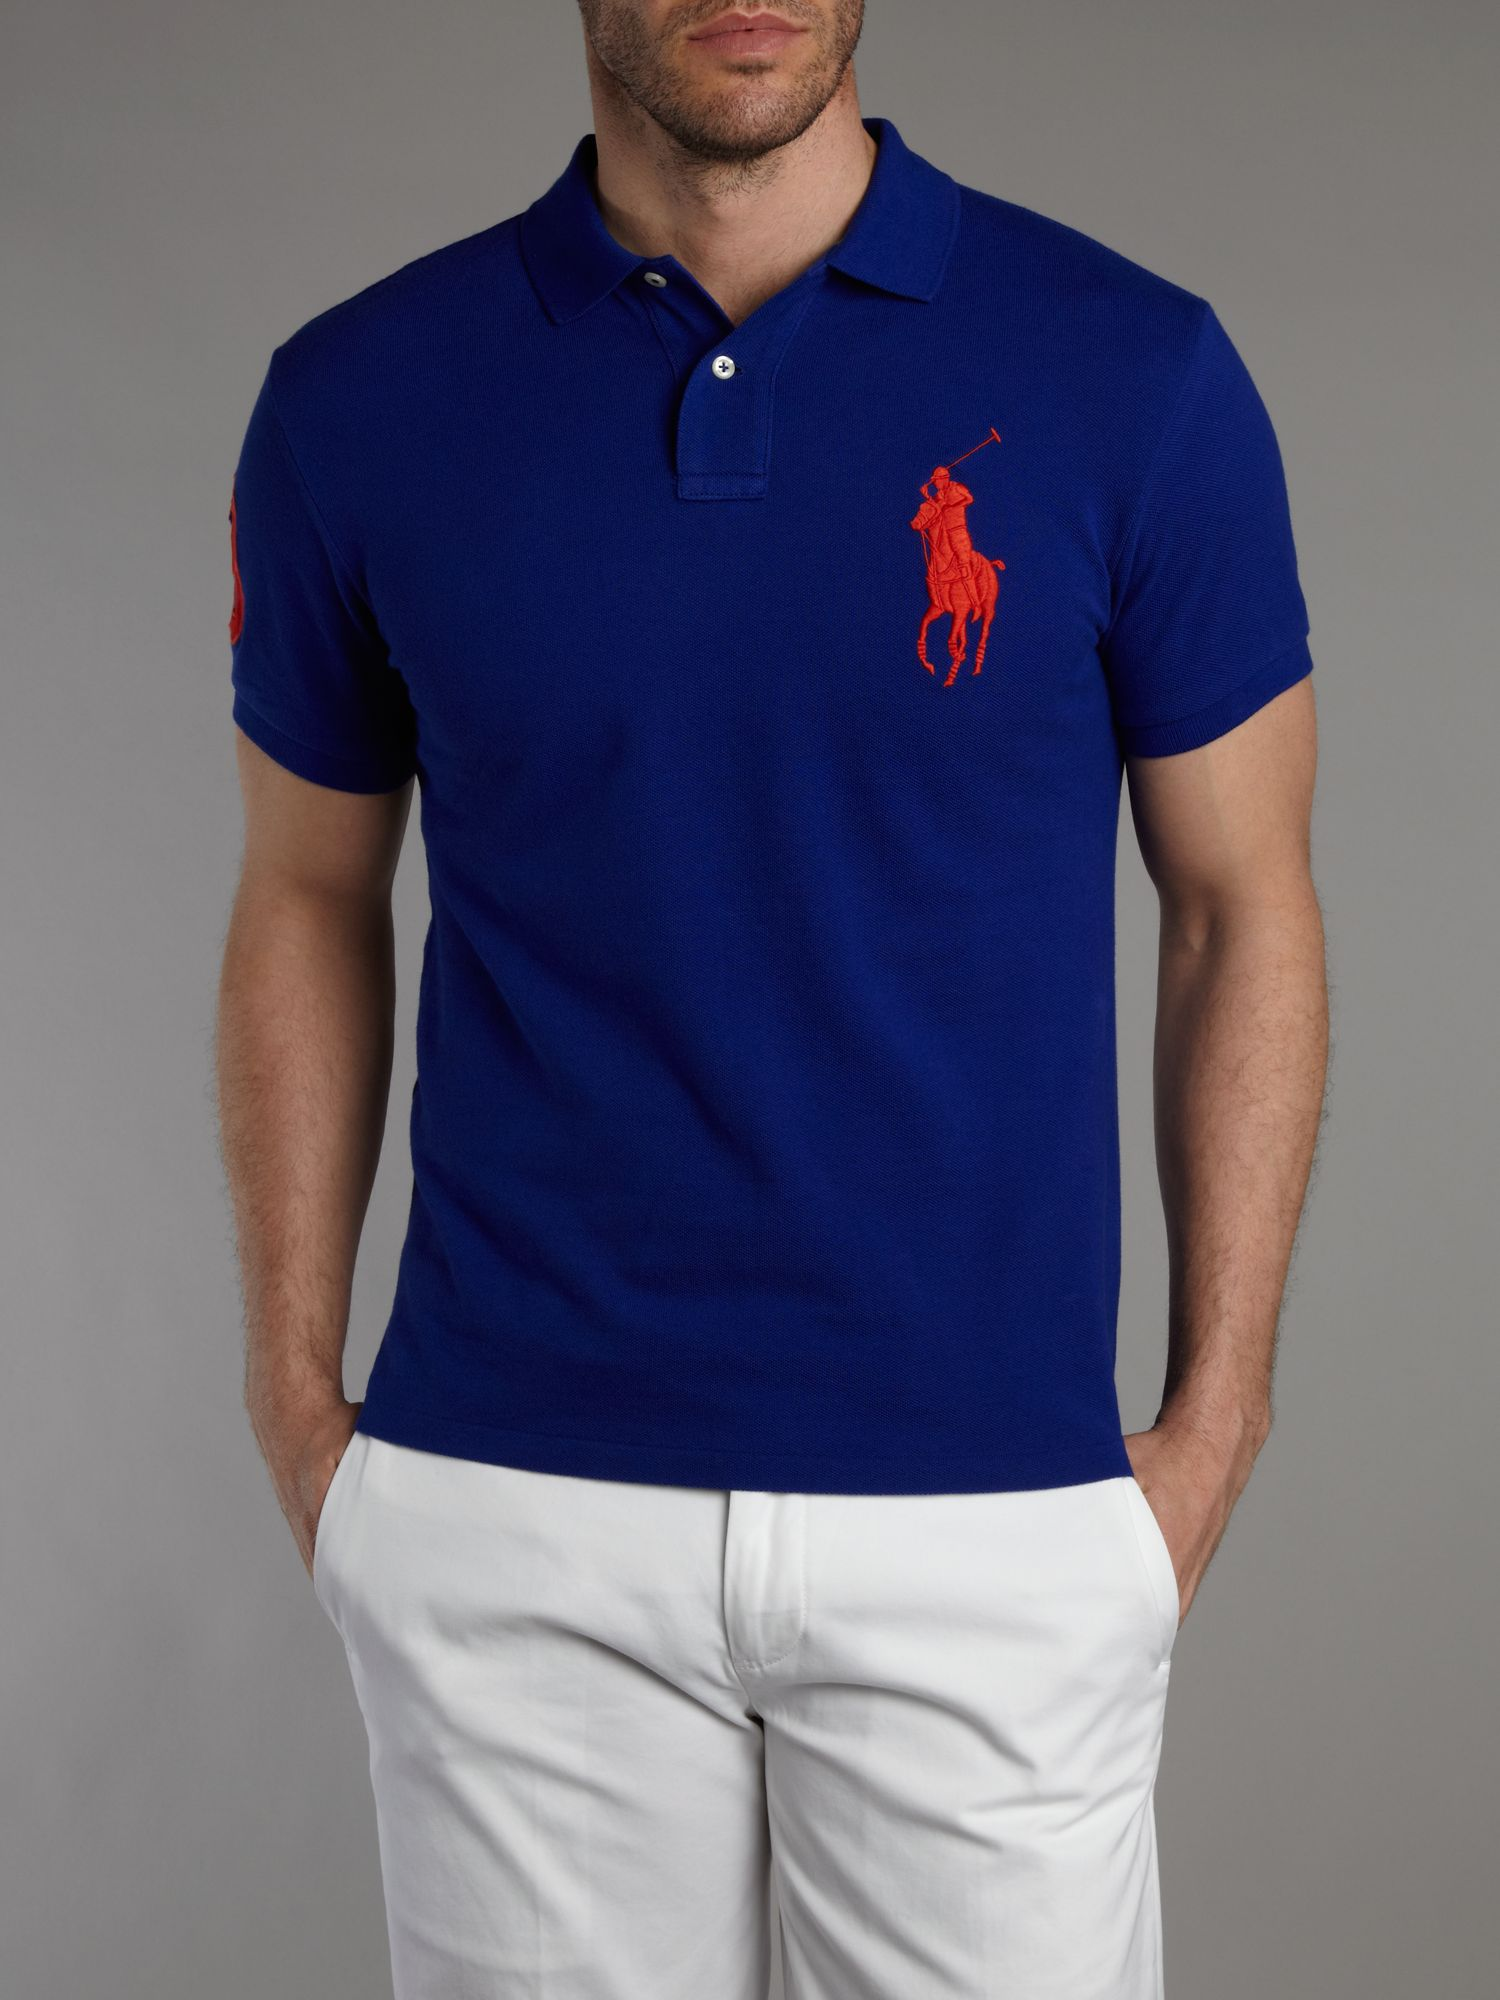 polo ralph lauren slim fit big pony polo shirt in blue for men lyst. Black Bedroom Furniture Sets. Home Design Ideas